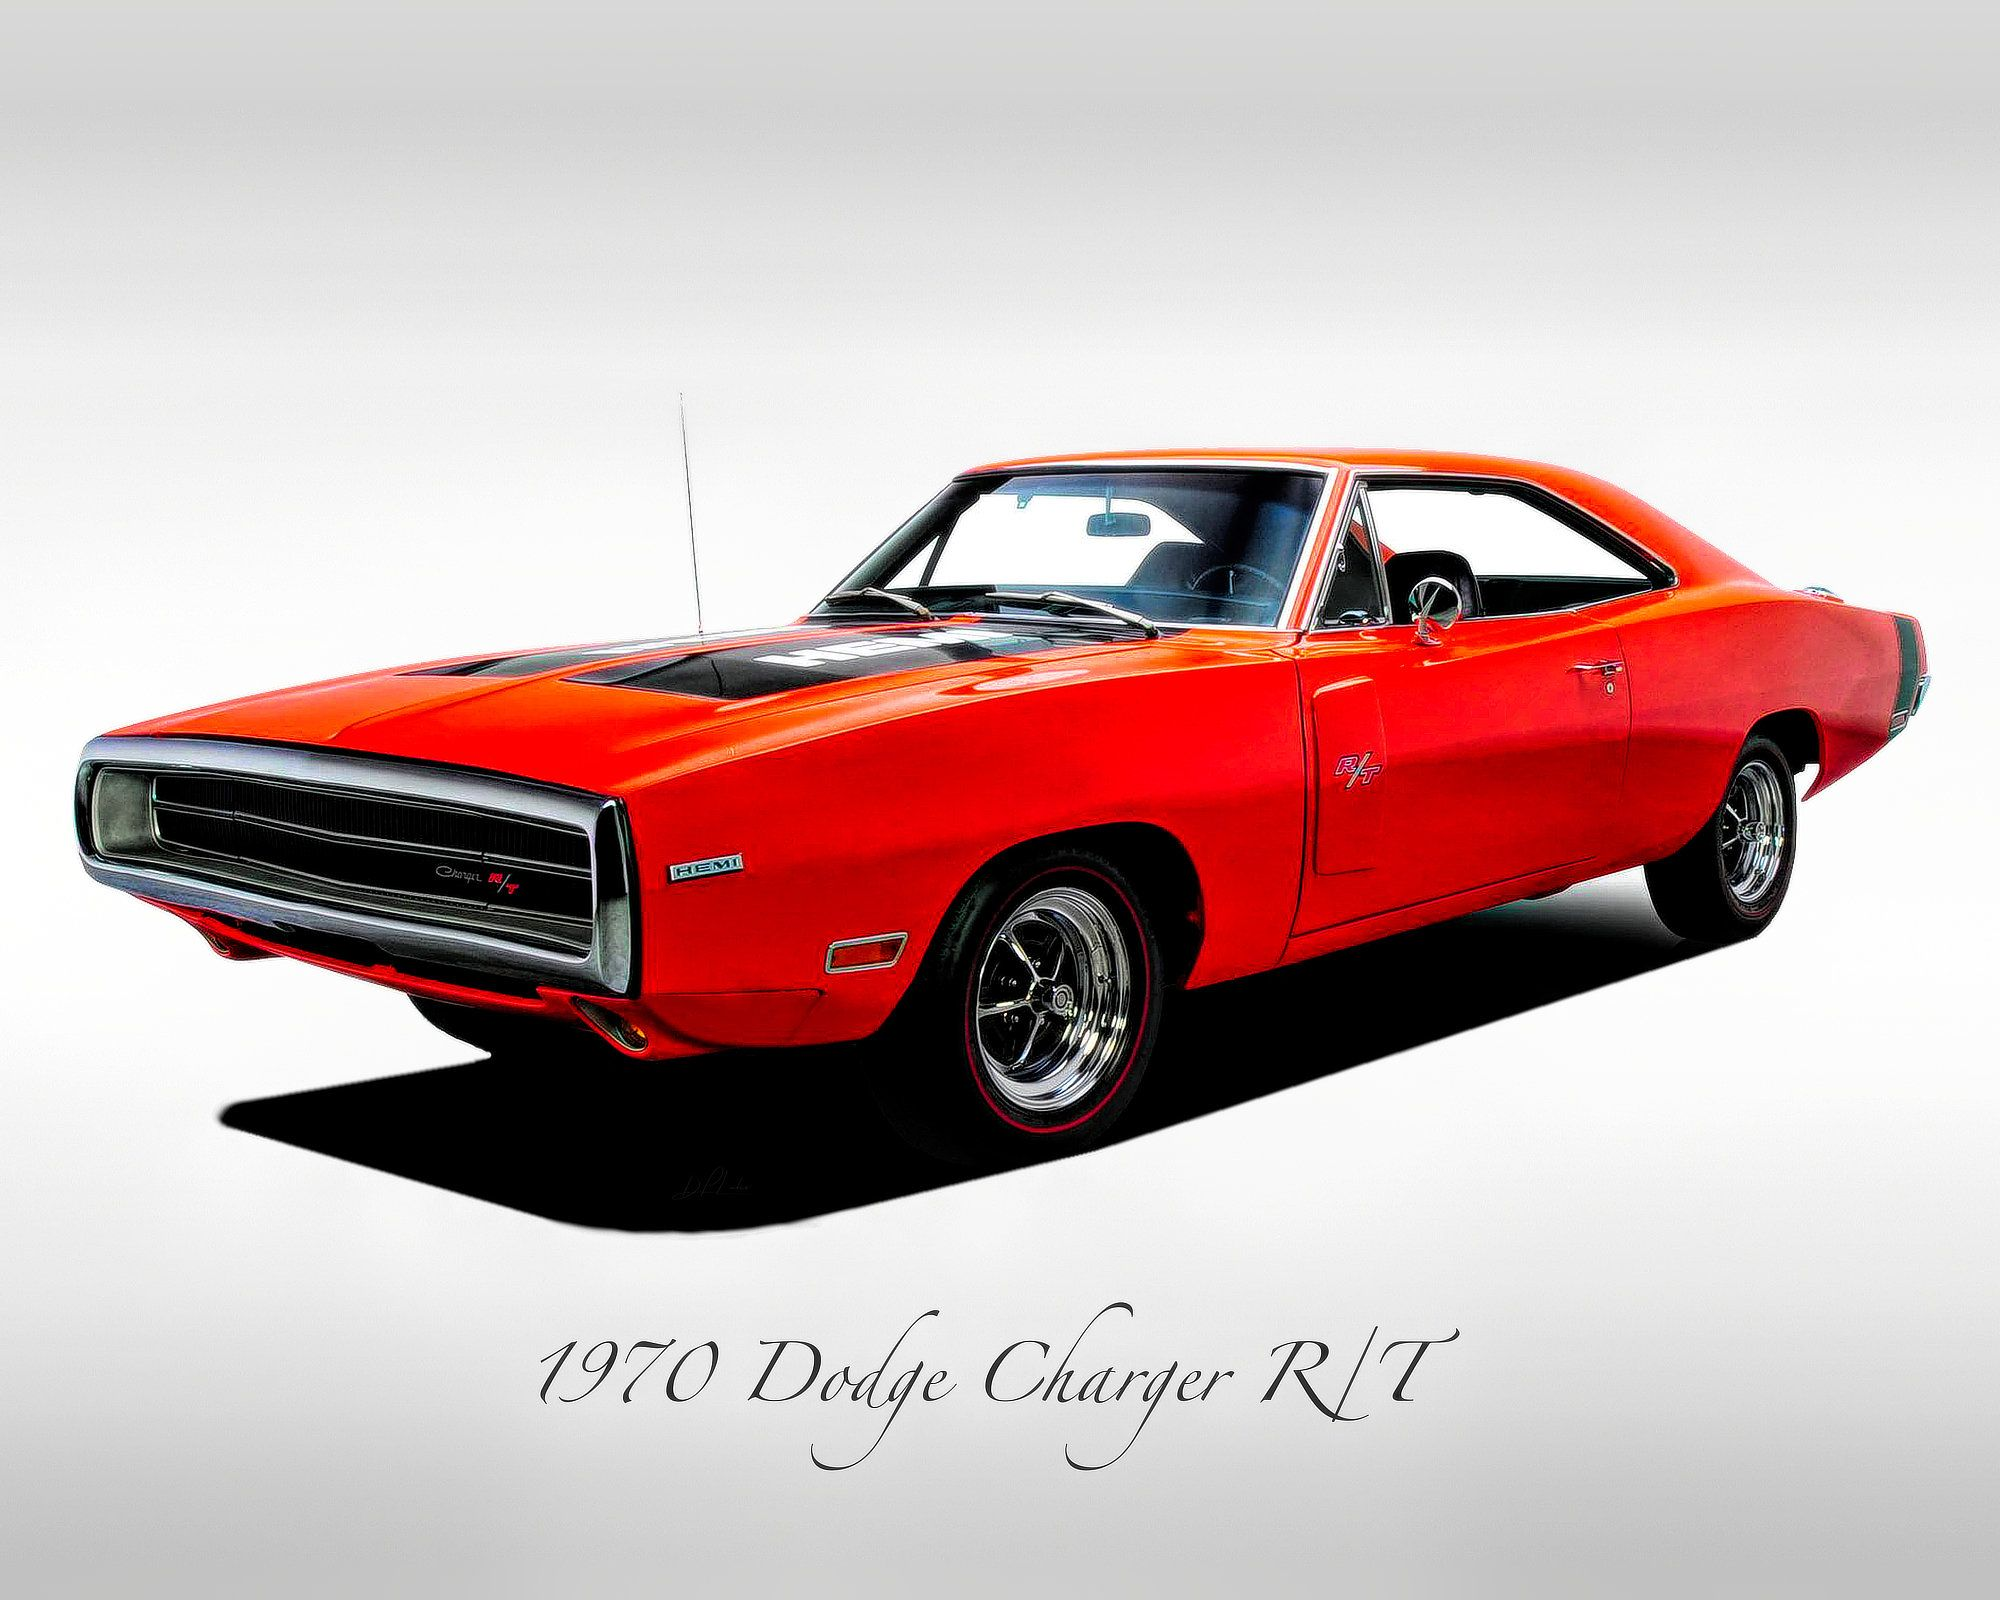 Classic Cars – 1970 Dodge Charger R/T Red – Muscle Car – Print